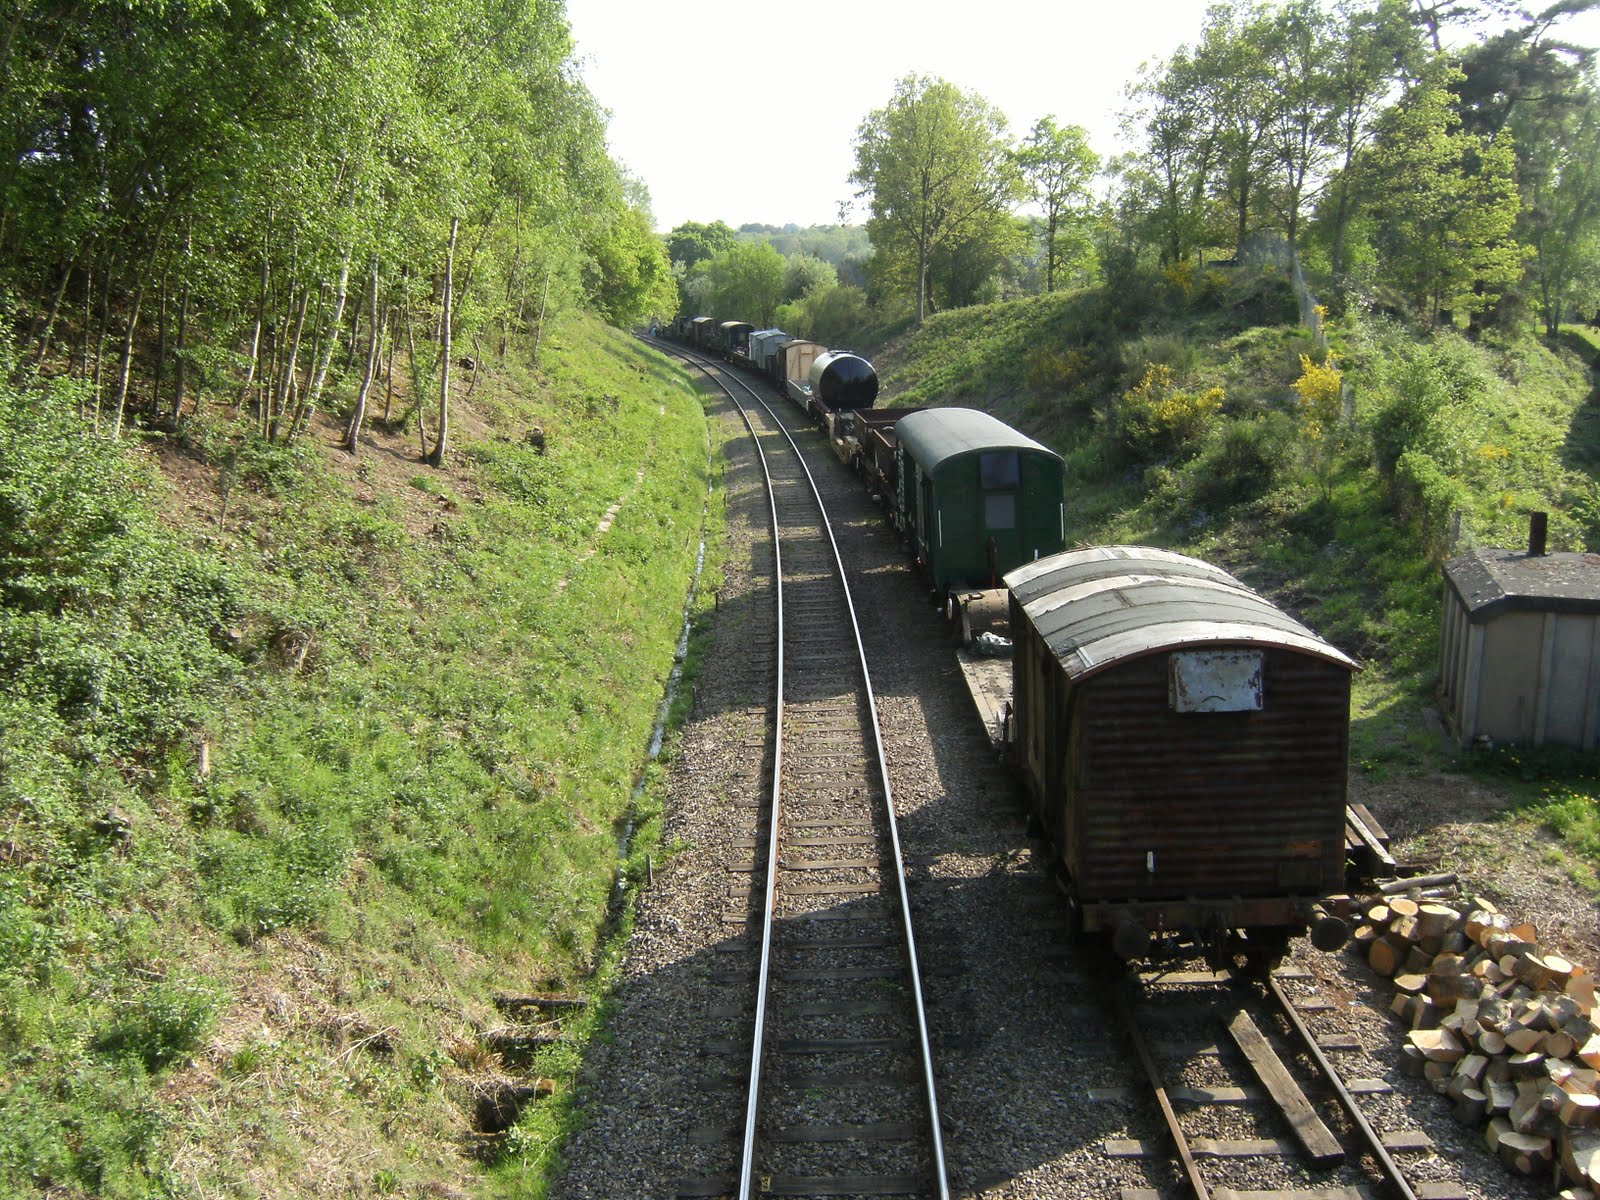 DSCF7492 Spa Valley Railway sidings at Groombridge